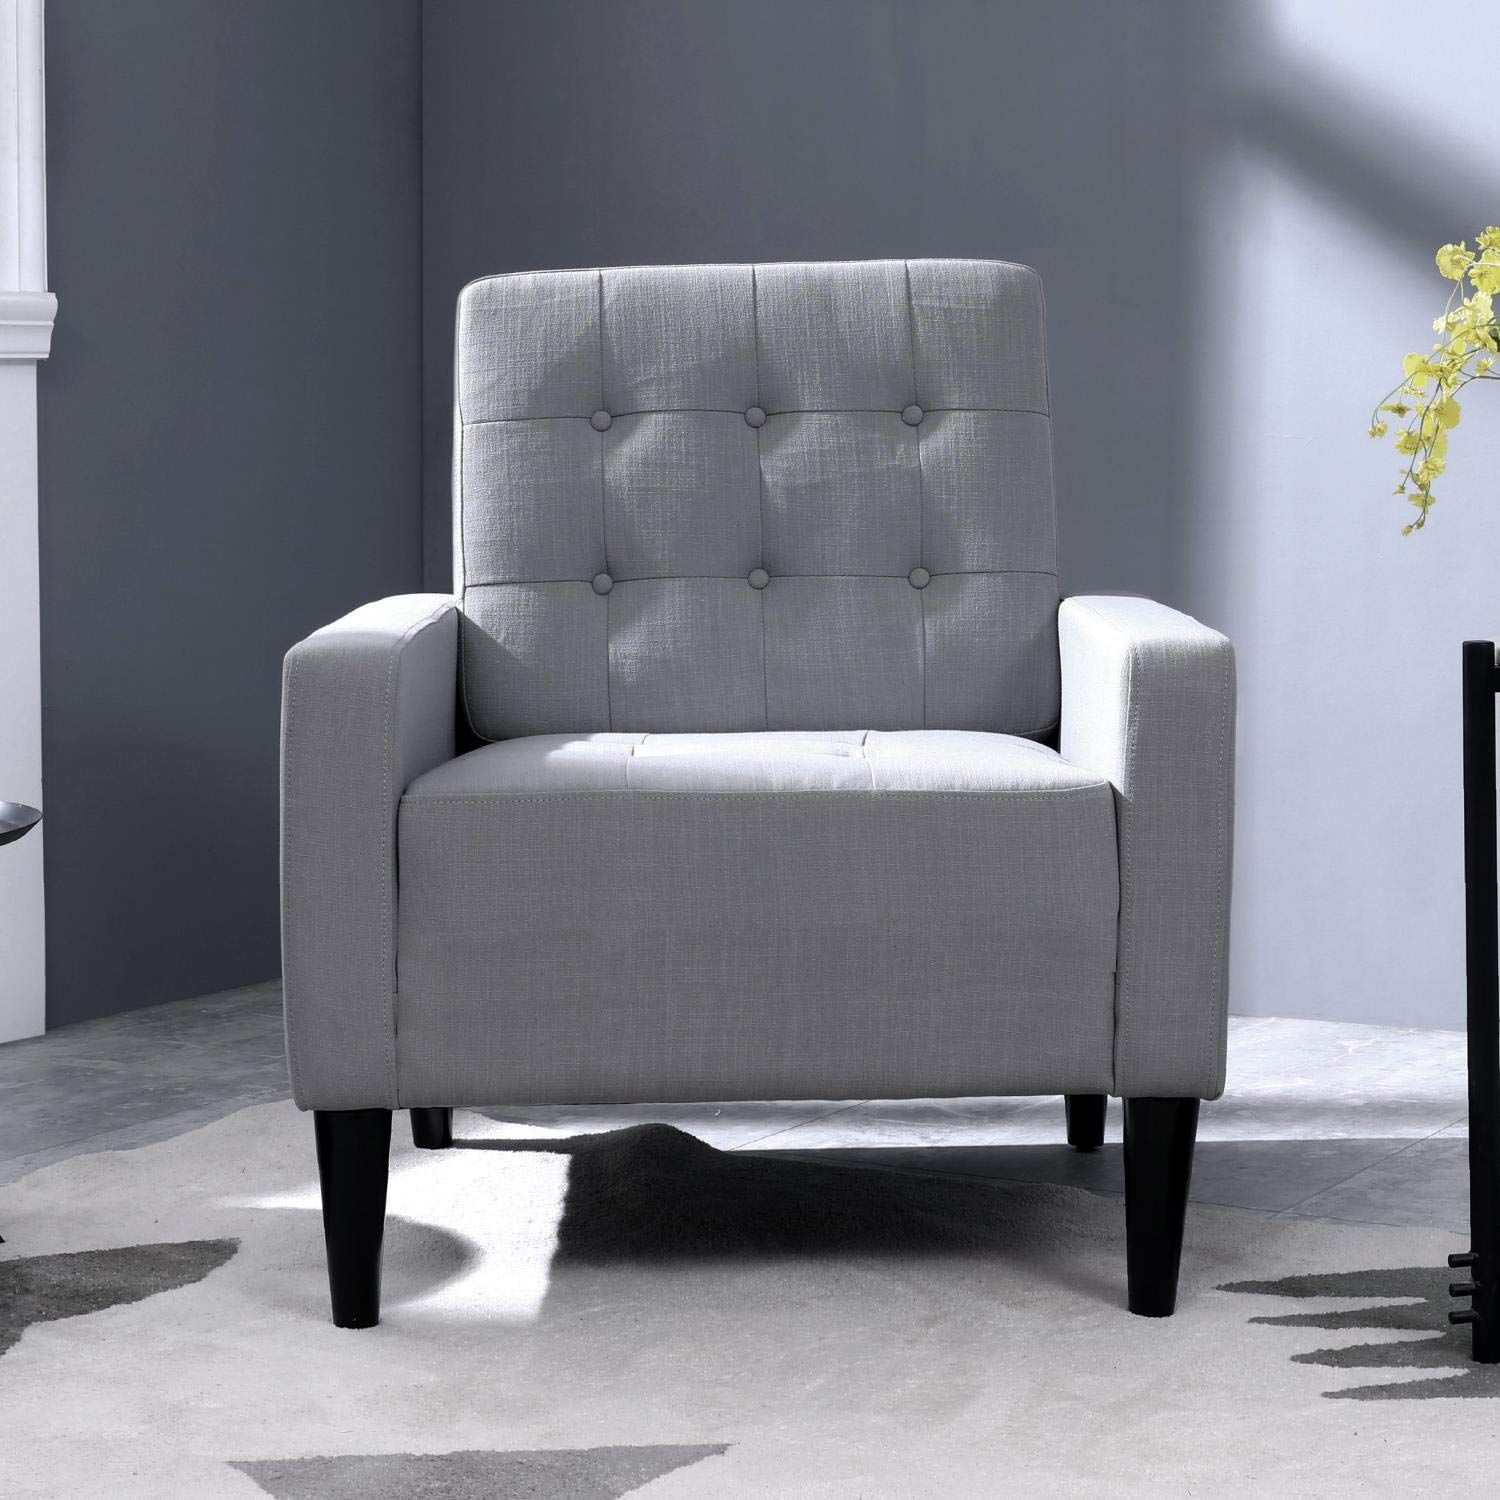 Top Space Accent Chair Living Room Chair Arm Chairs Single